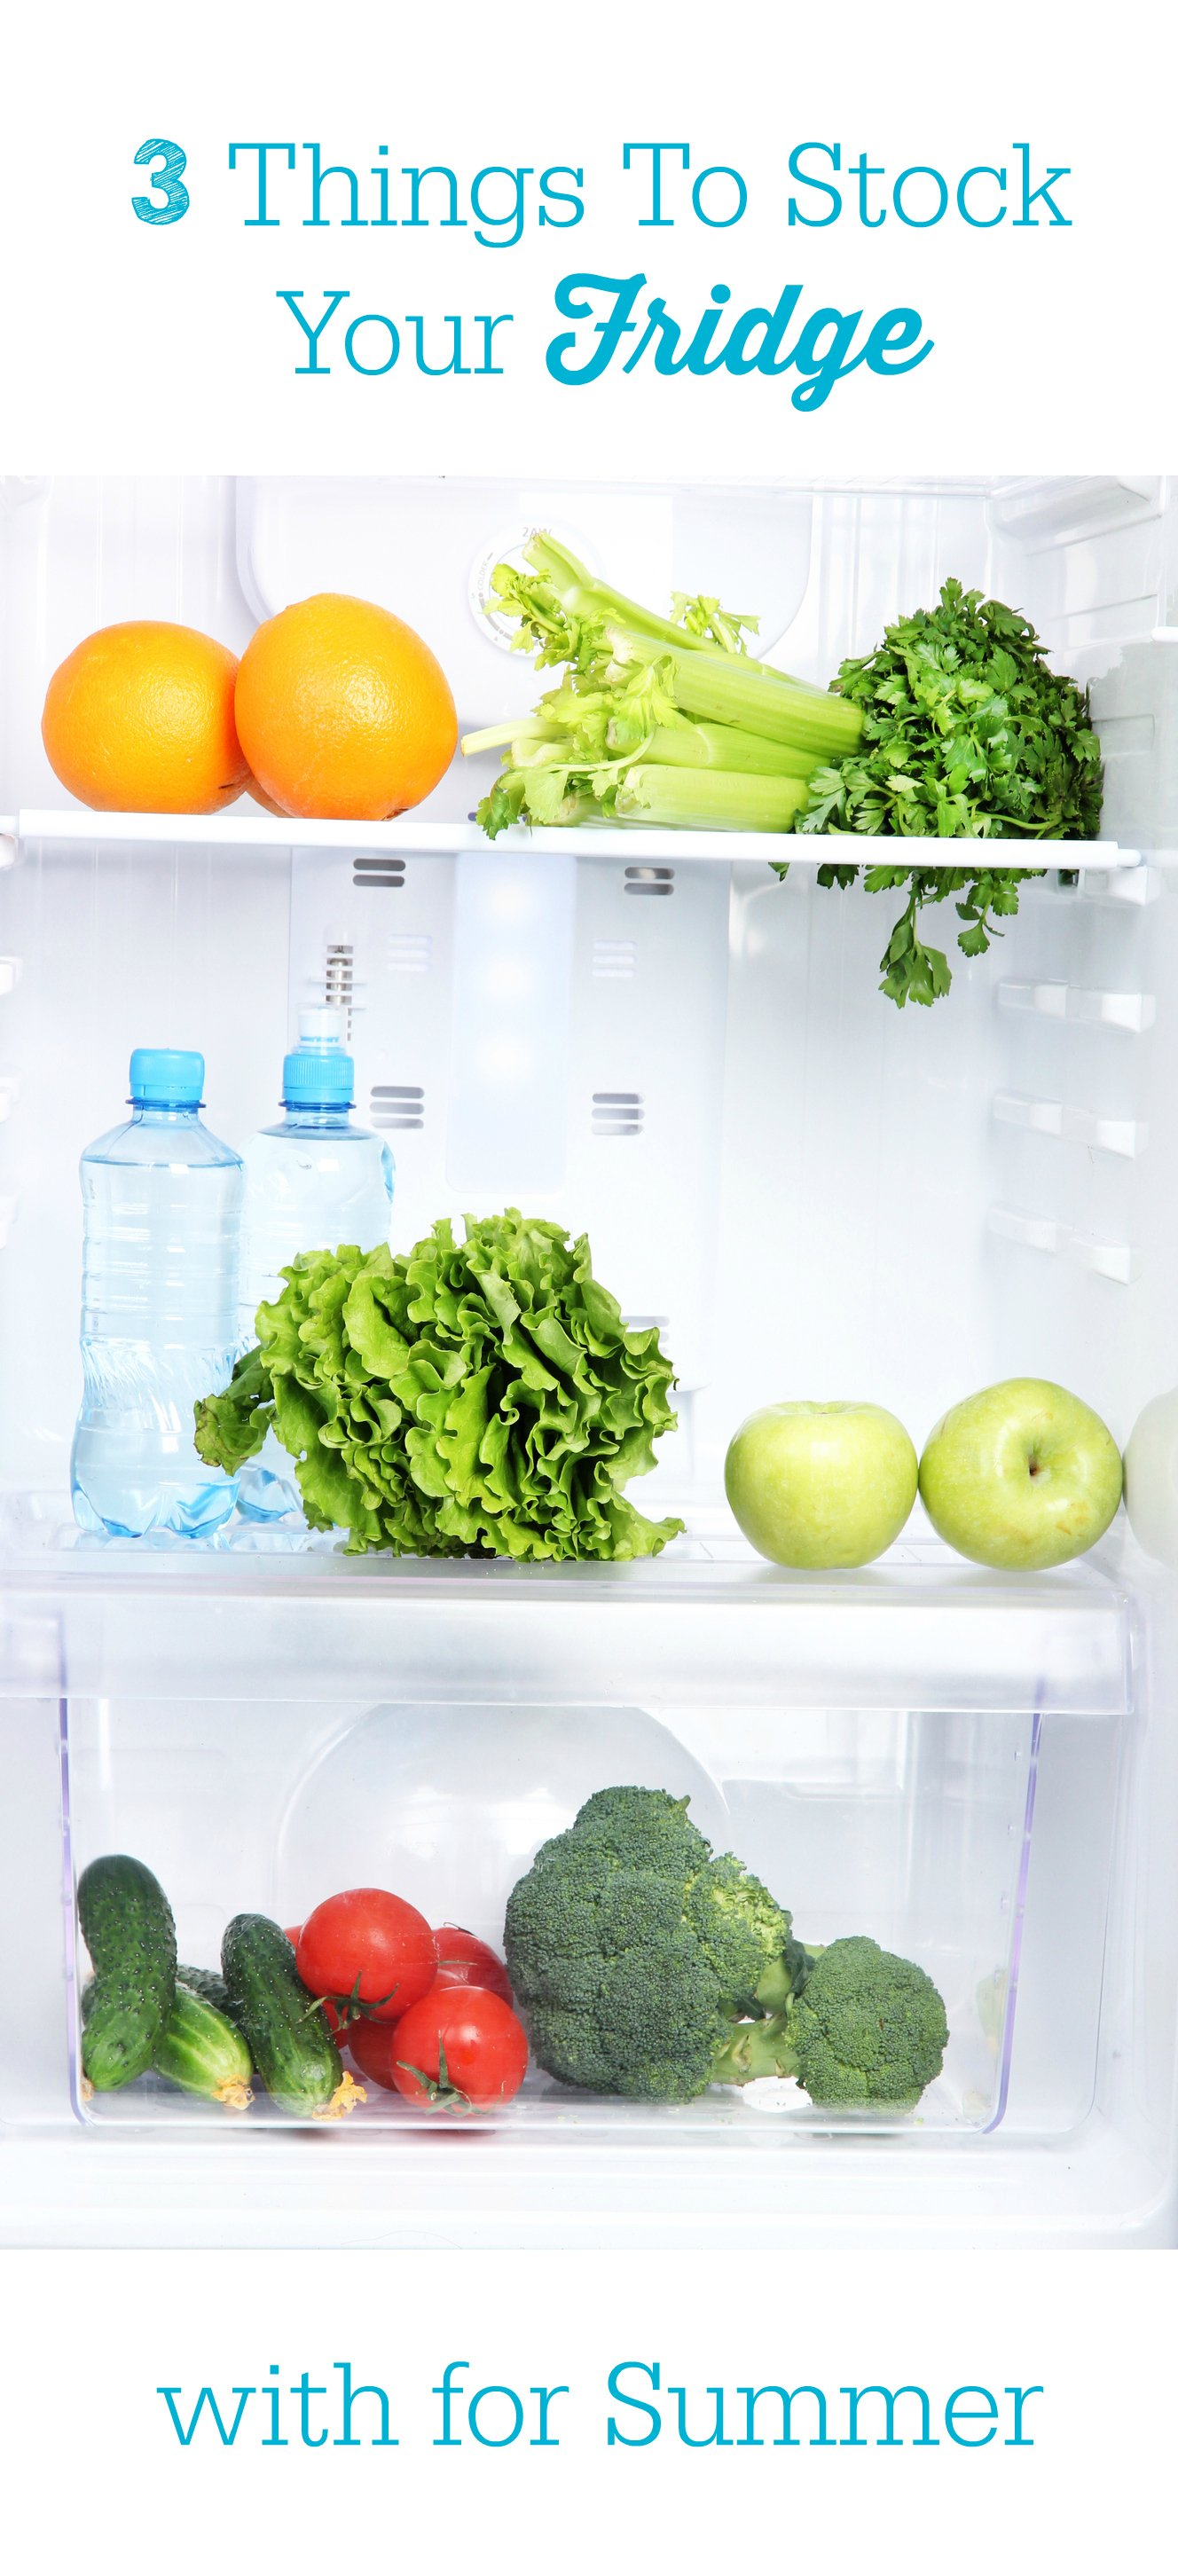 Are you busy? Check out these 3 things you should keep your fridge stocked up with this summer for easy and healthy options.